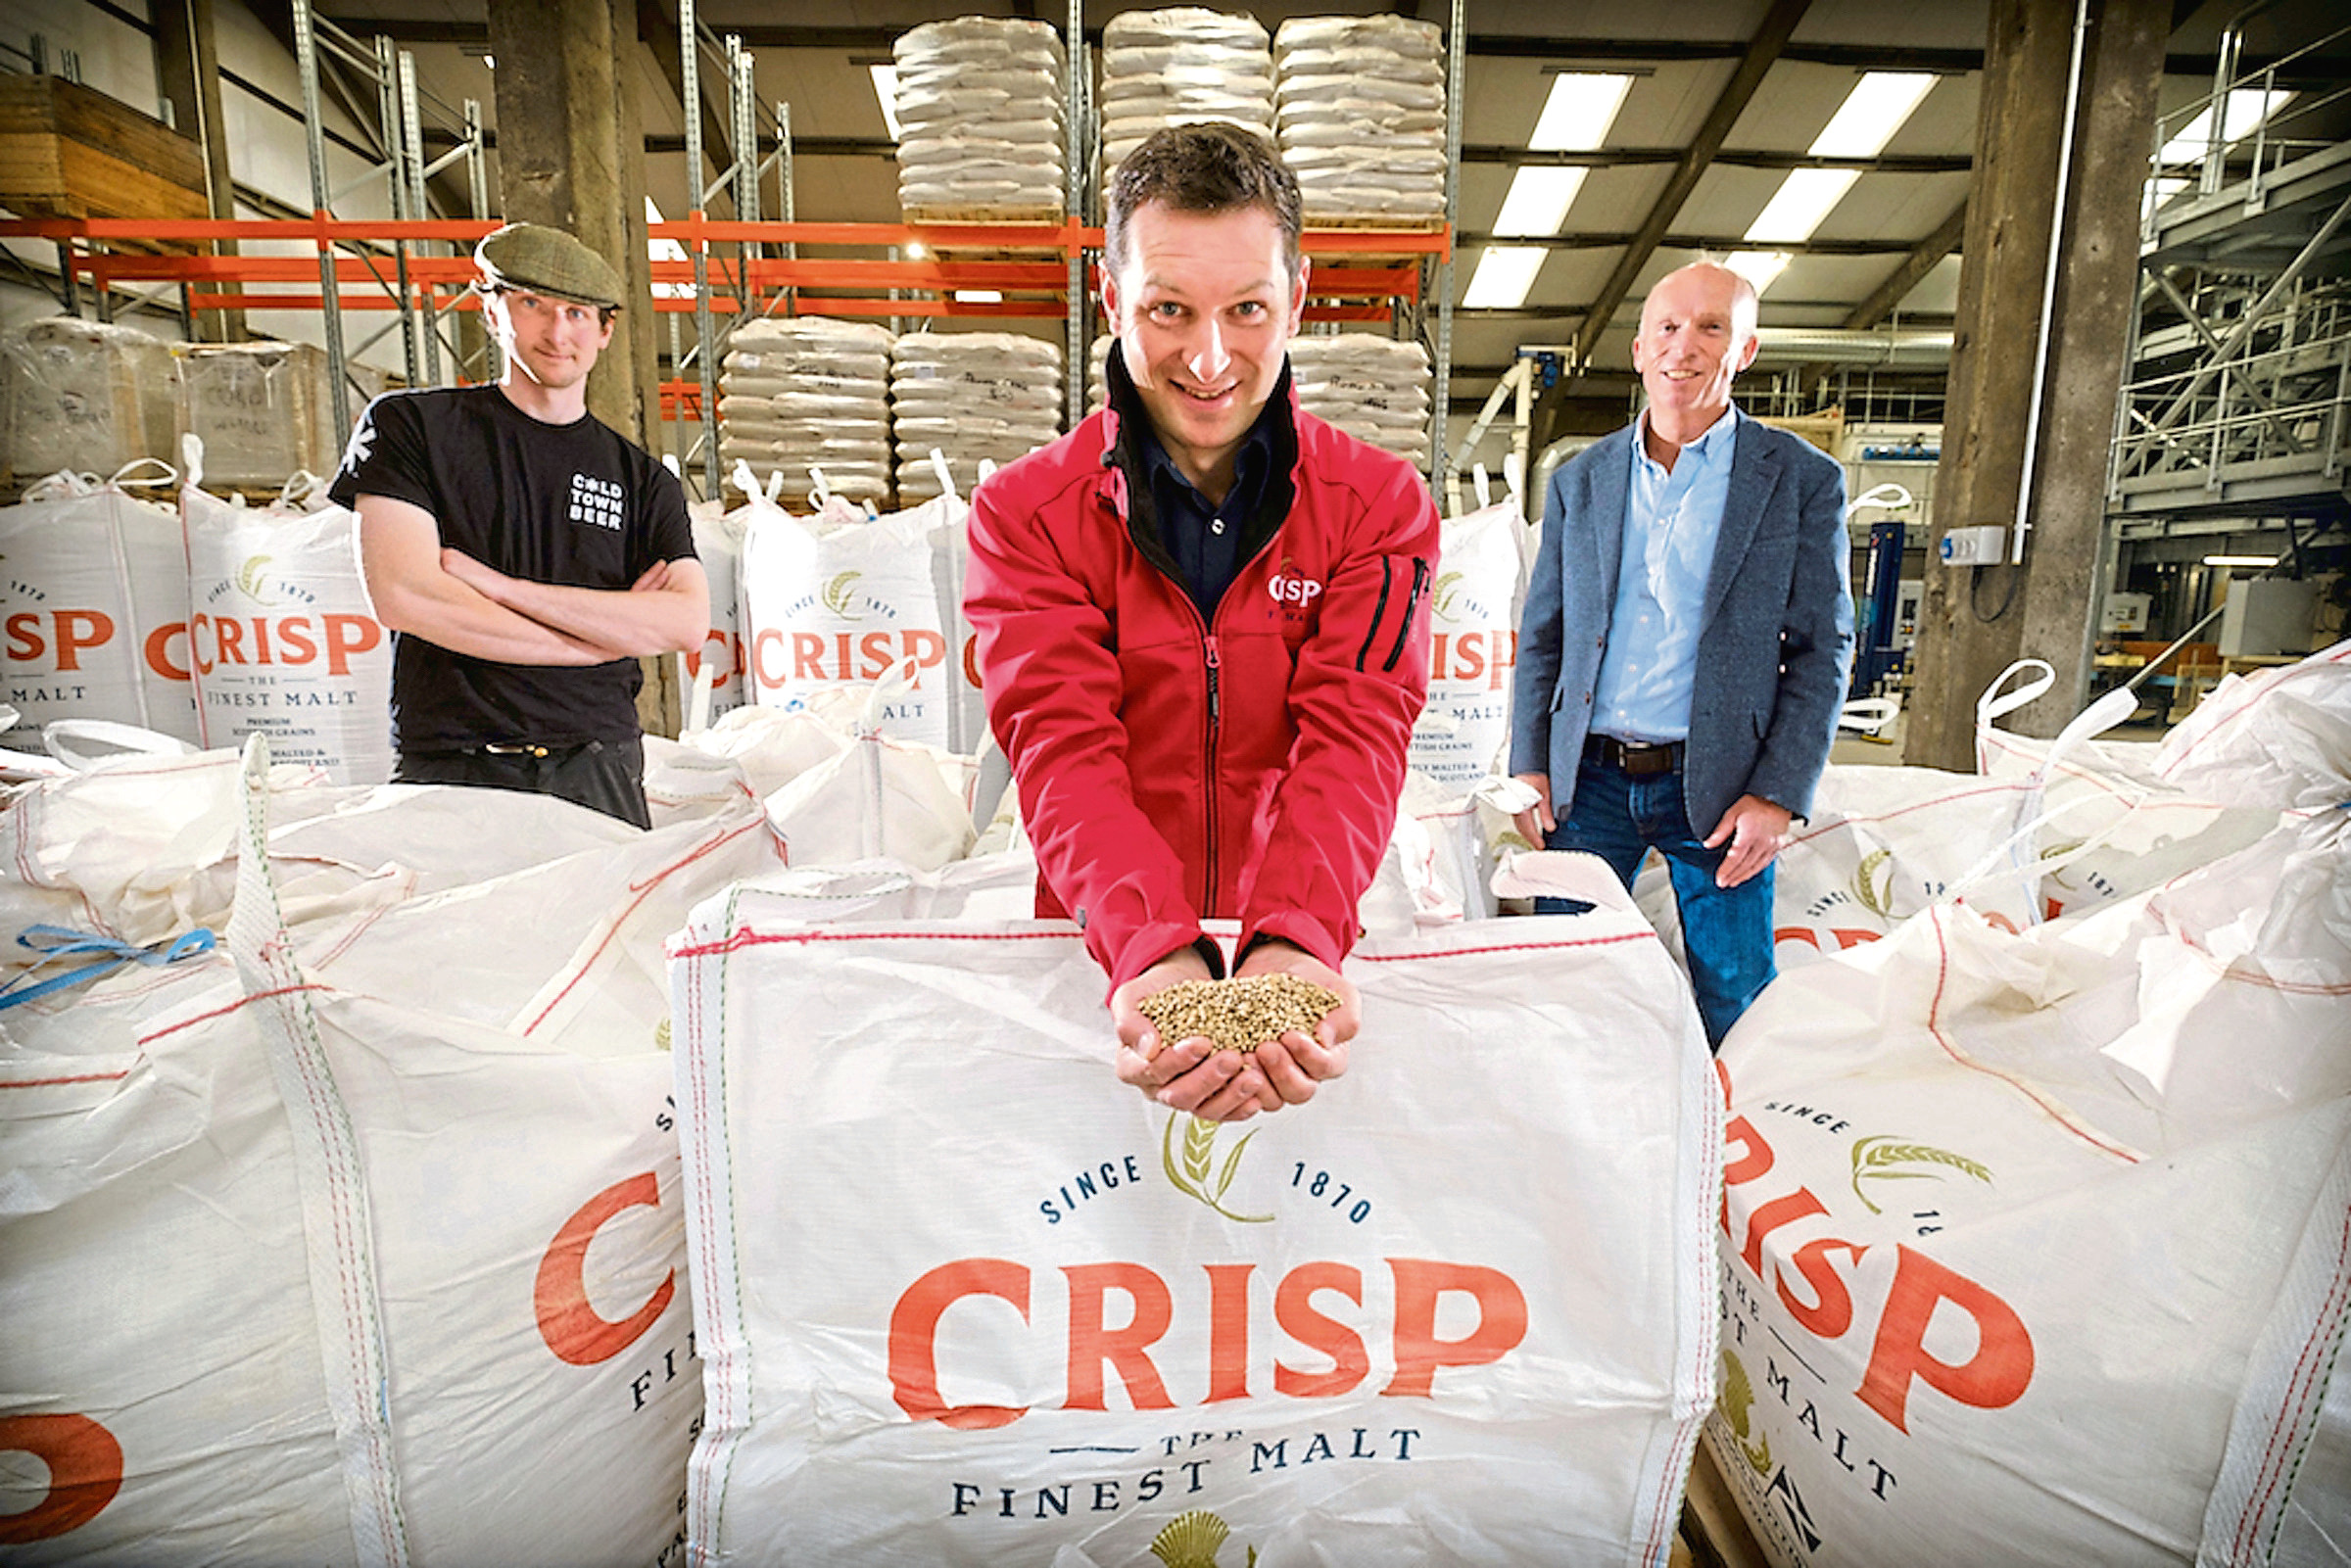 From left, Ed Evans, head brewer, Cold Town Brewery; Colin Johnston, Scottish craft sales manager, Crisp Malt and John Hutcheson, Leckerstone Farm